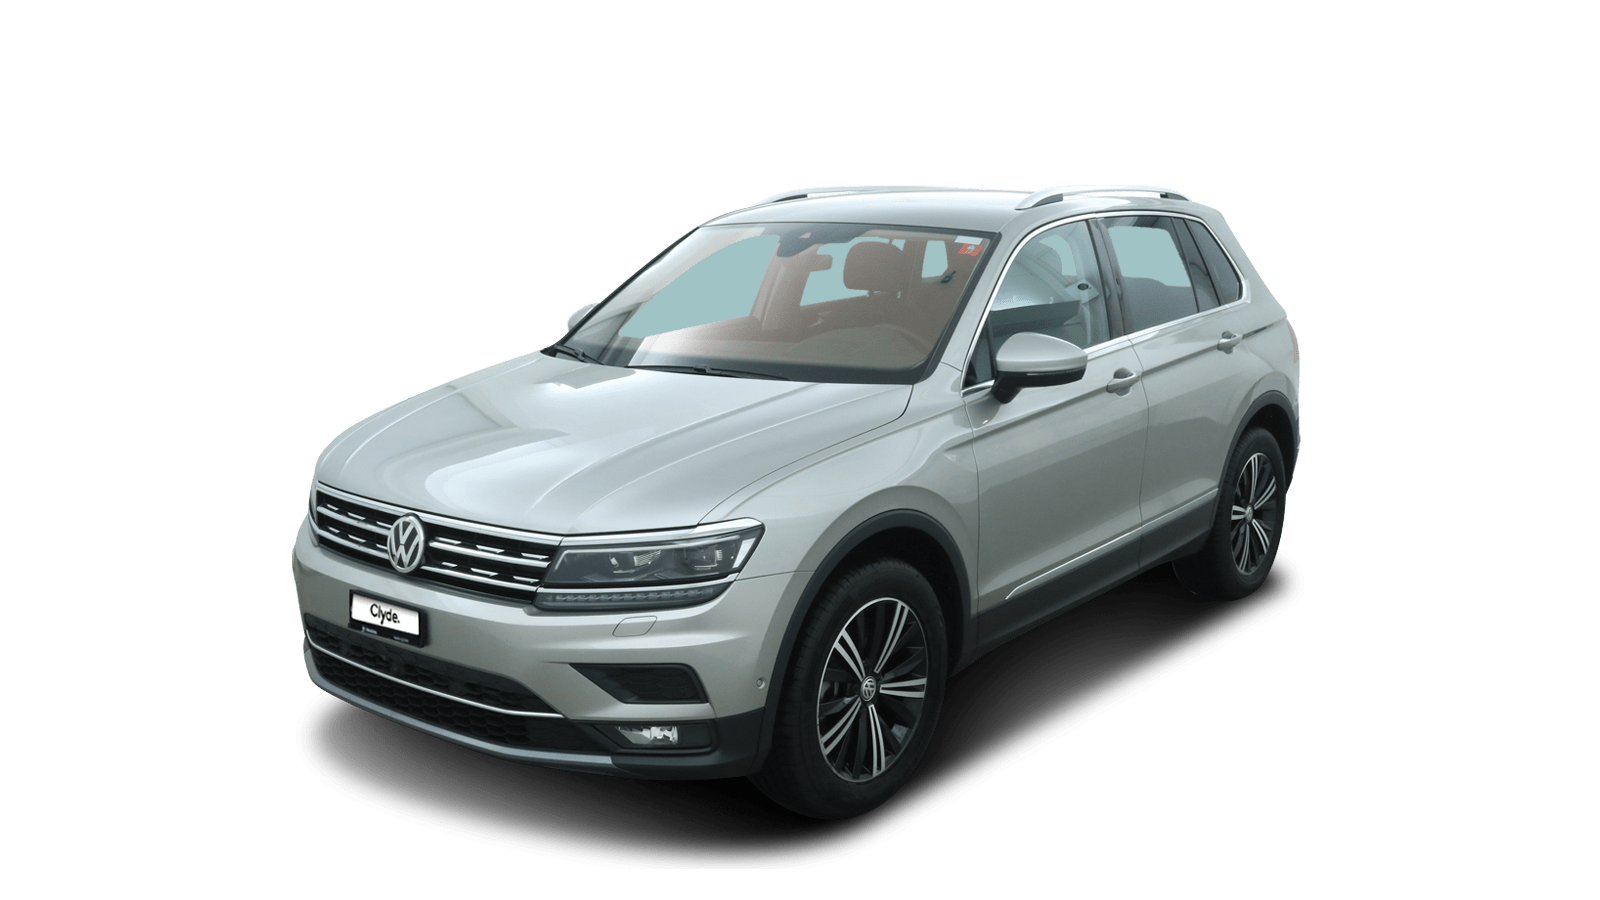 VW Tiguan Silver front - Clyde car subscription